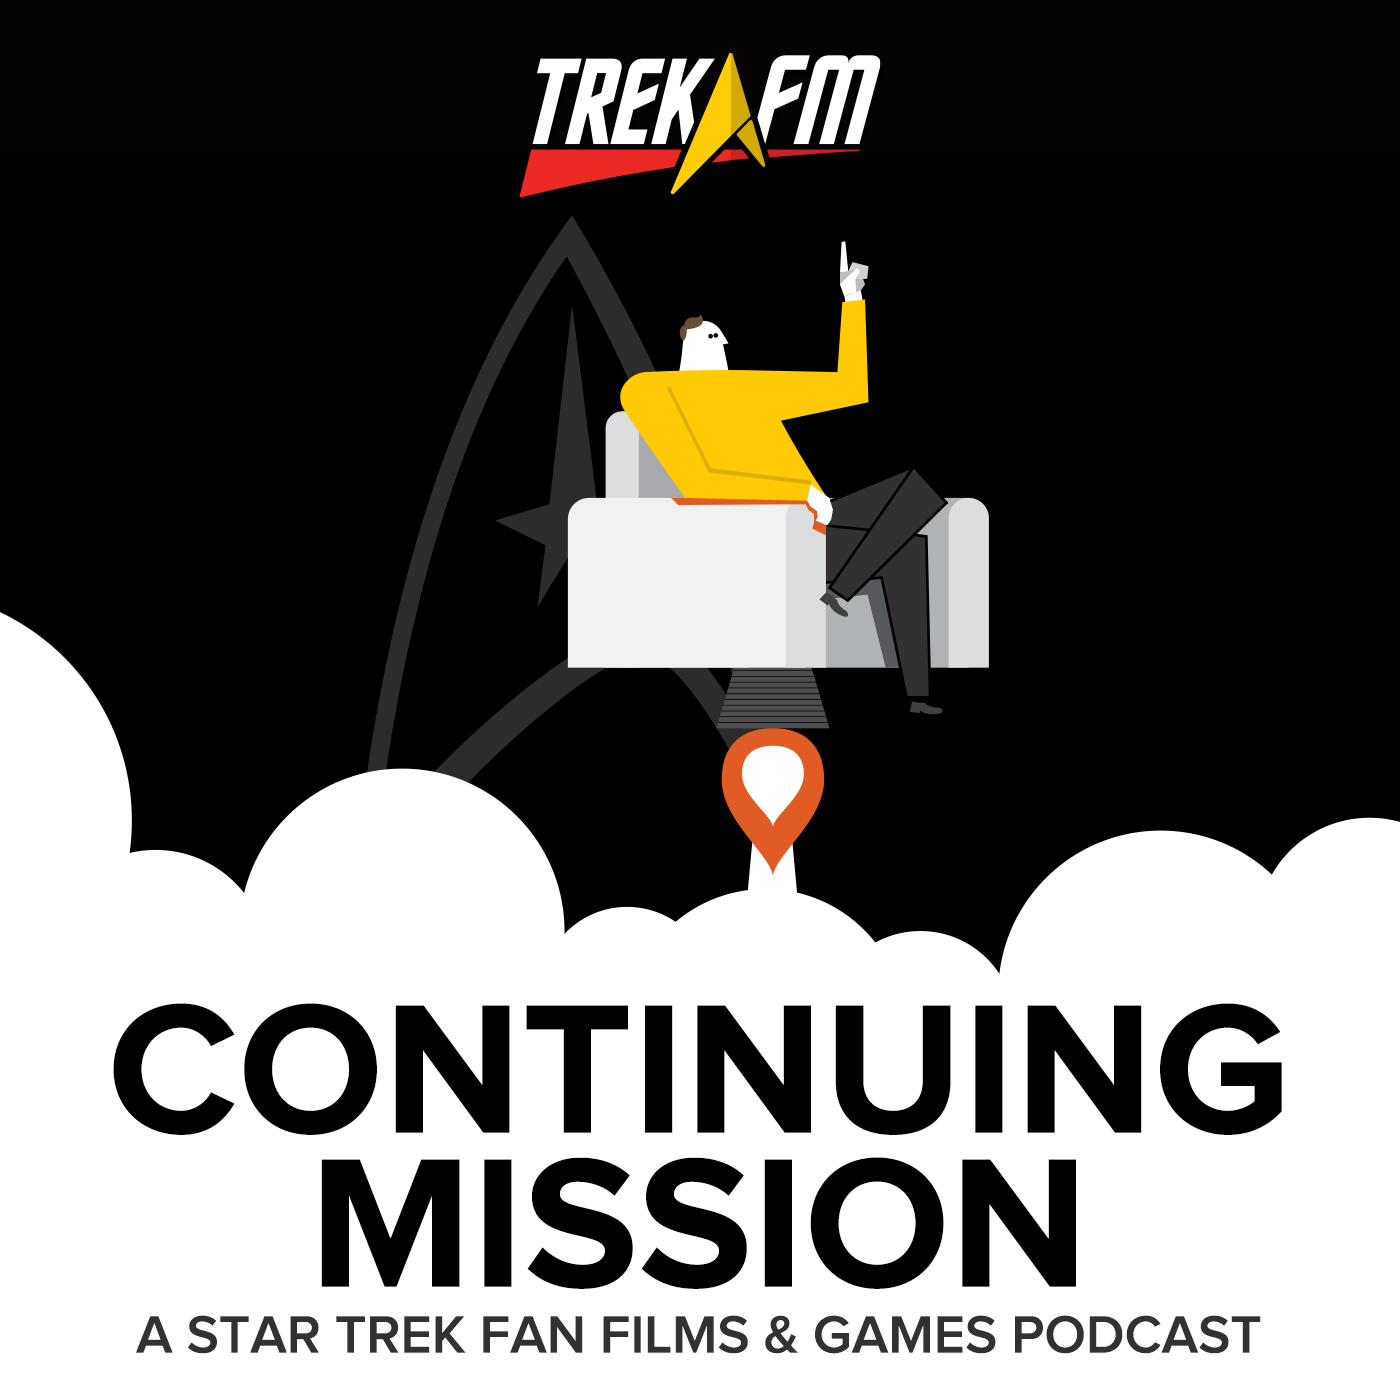 Continuing-Mission-Cover-400x400.jpg